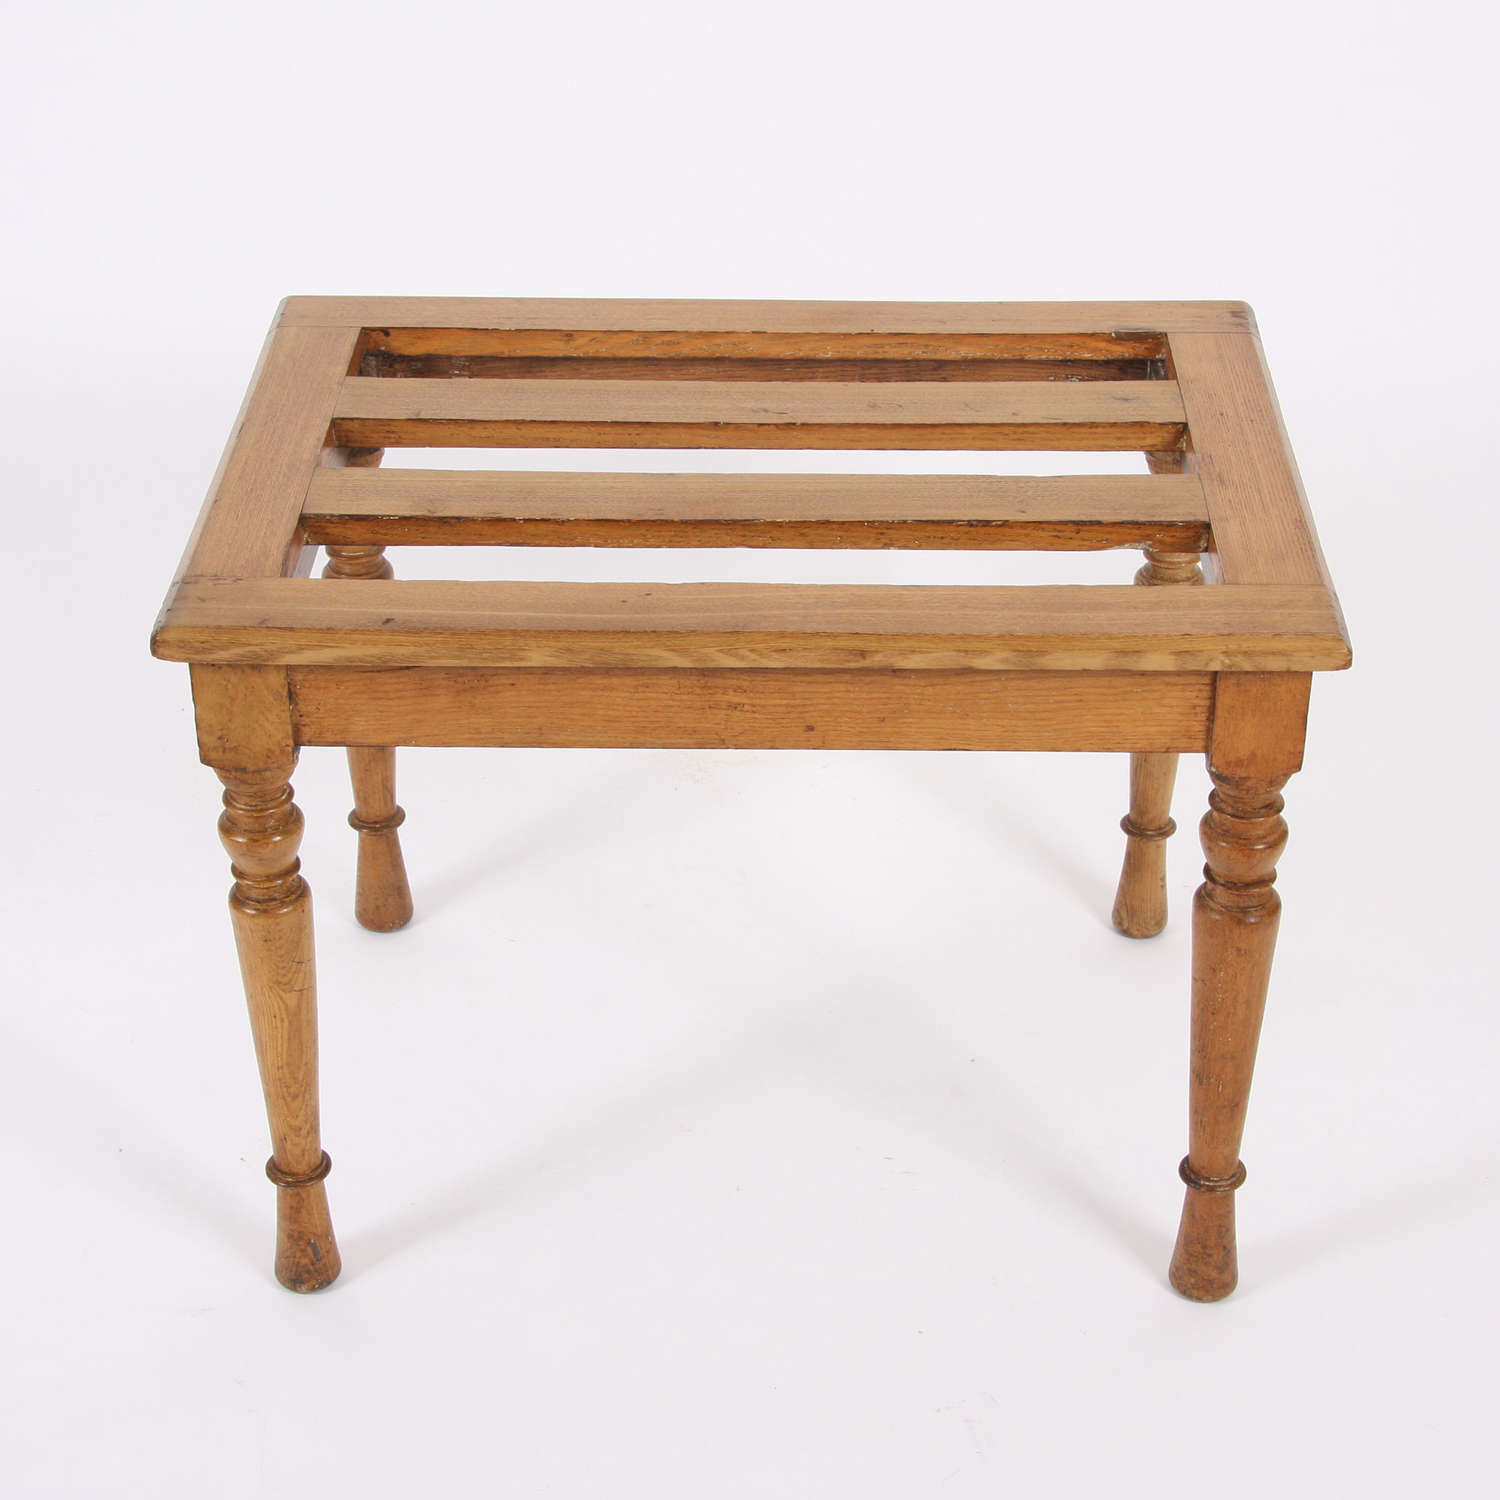 Early 20th Century English Wooden Luggage Rack